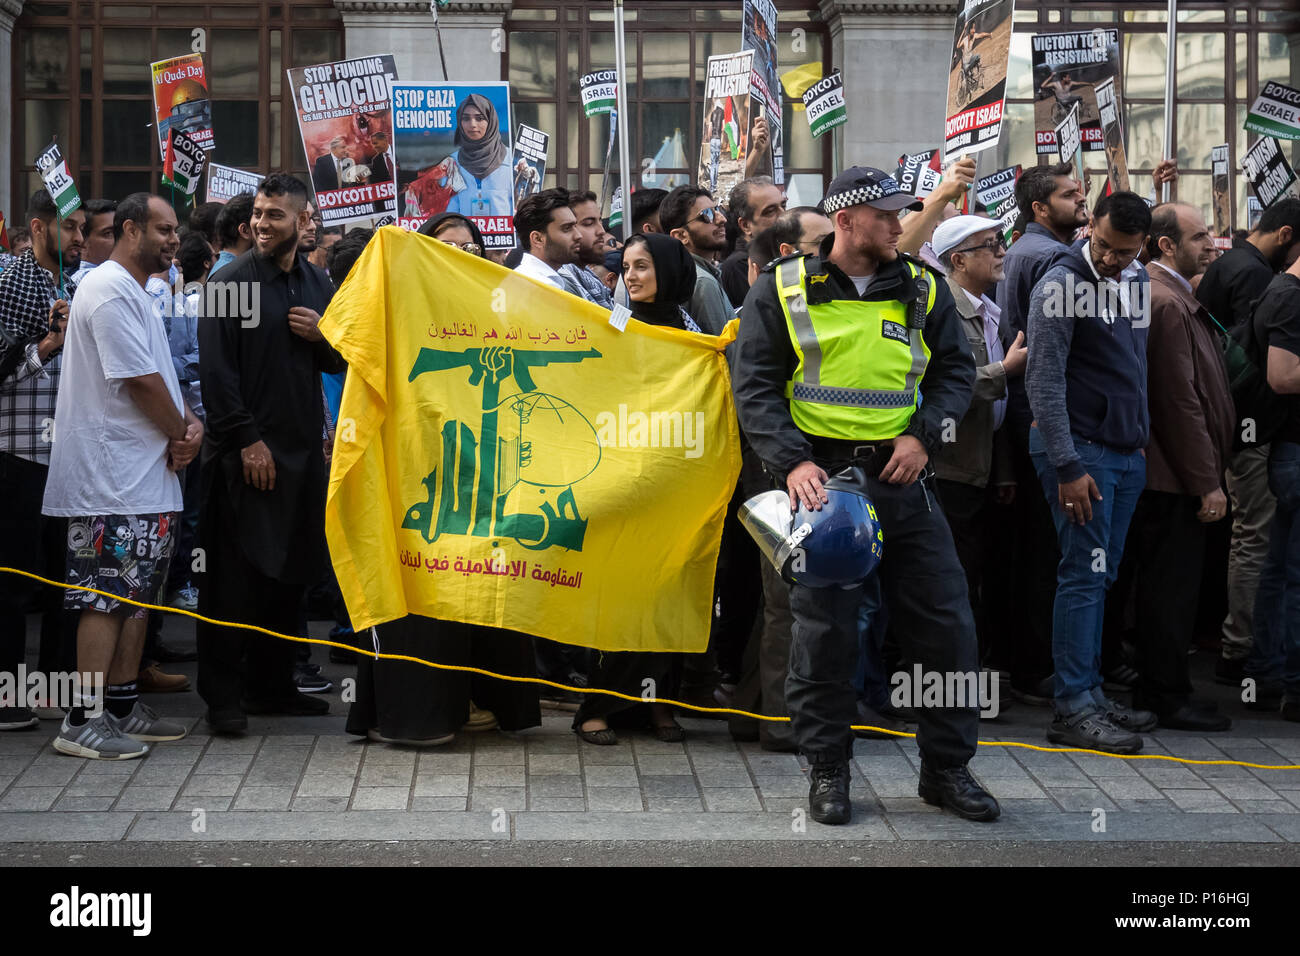 London, UK. 10th June, 2018. Hezbollah flags fly at Al Quds Day rally and march through central London. Credit: Guy Corbishley/Alamy Live News - Stock Image